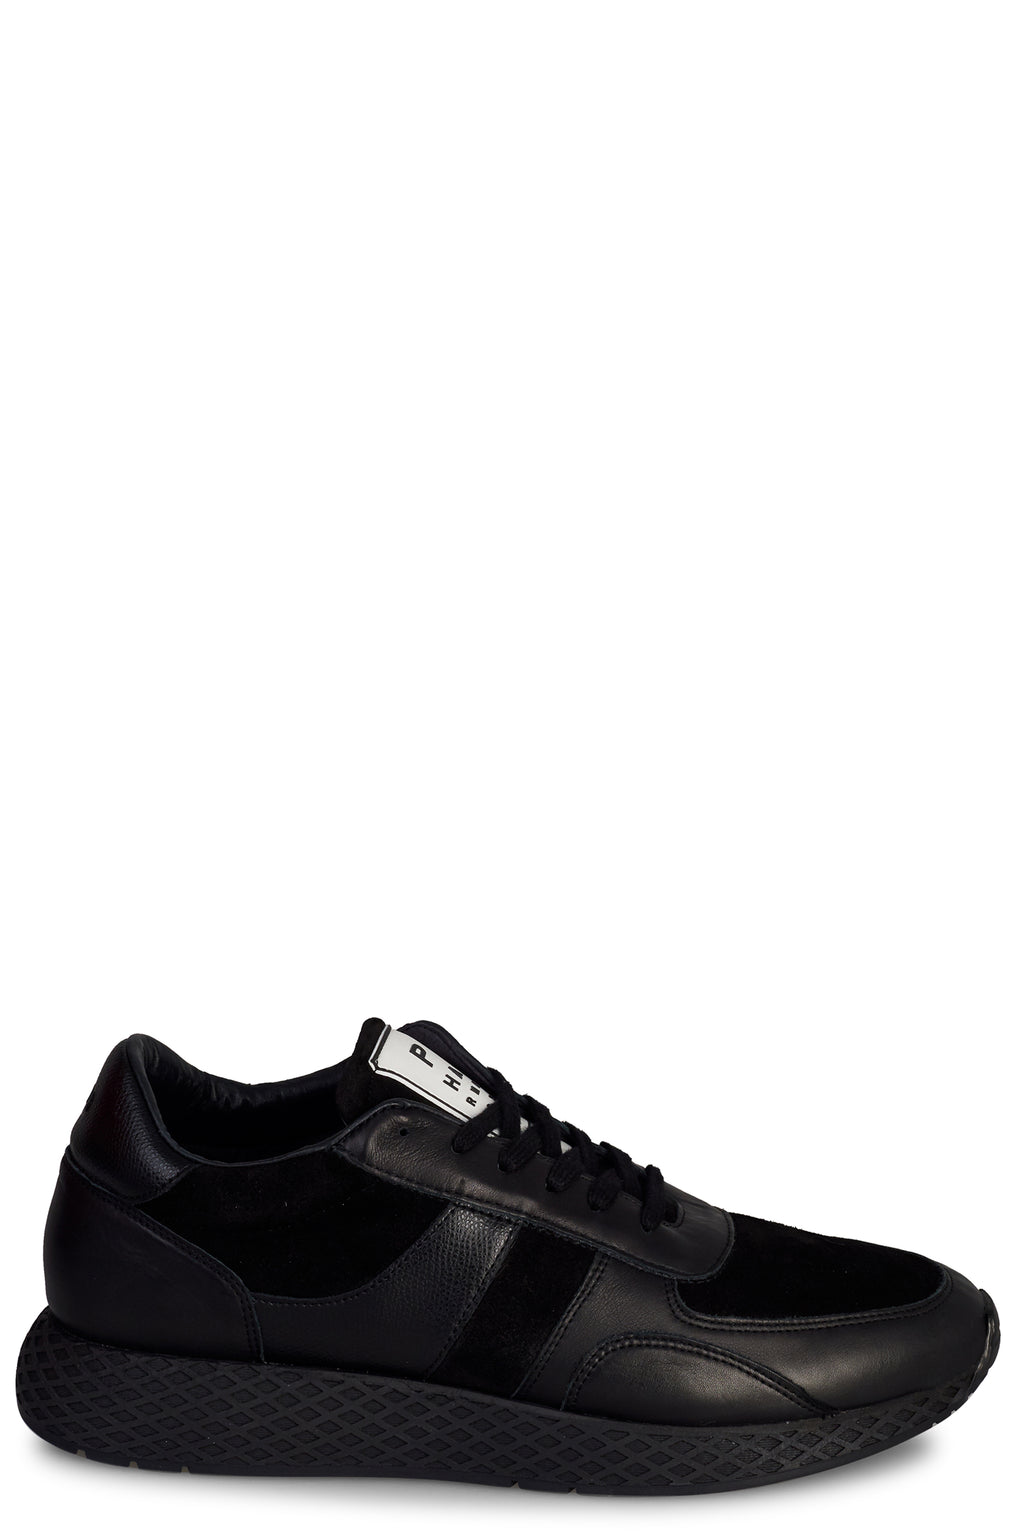 <b>PC402</b><br>Sneakers<br>sporty<br>